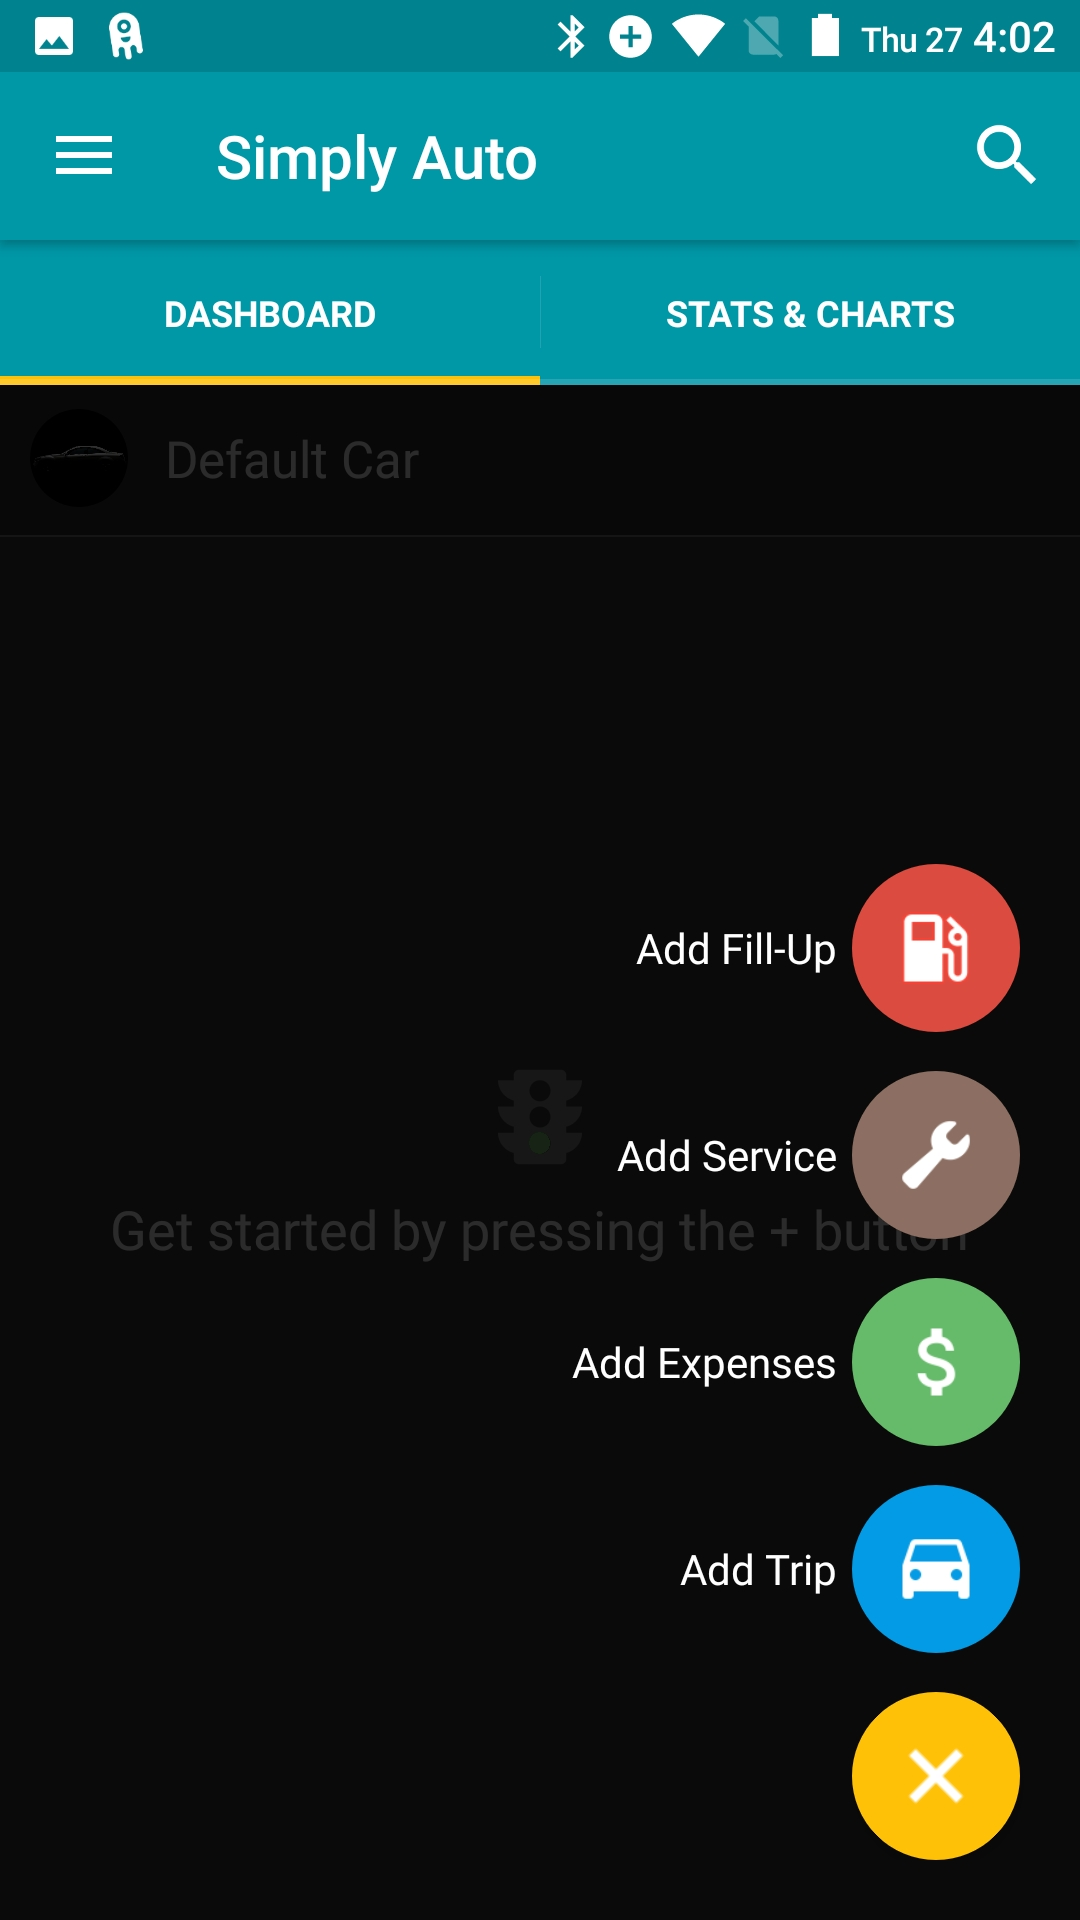 user guide services and expenses sample automobile service receipts tire rotation